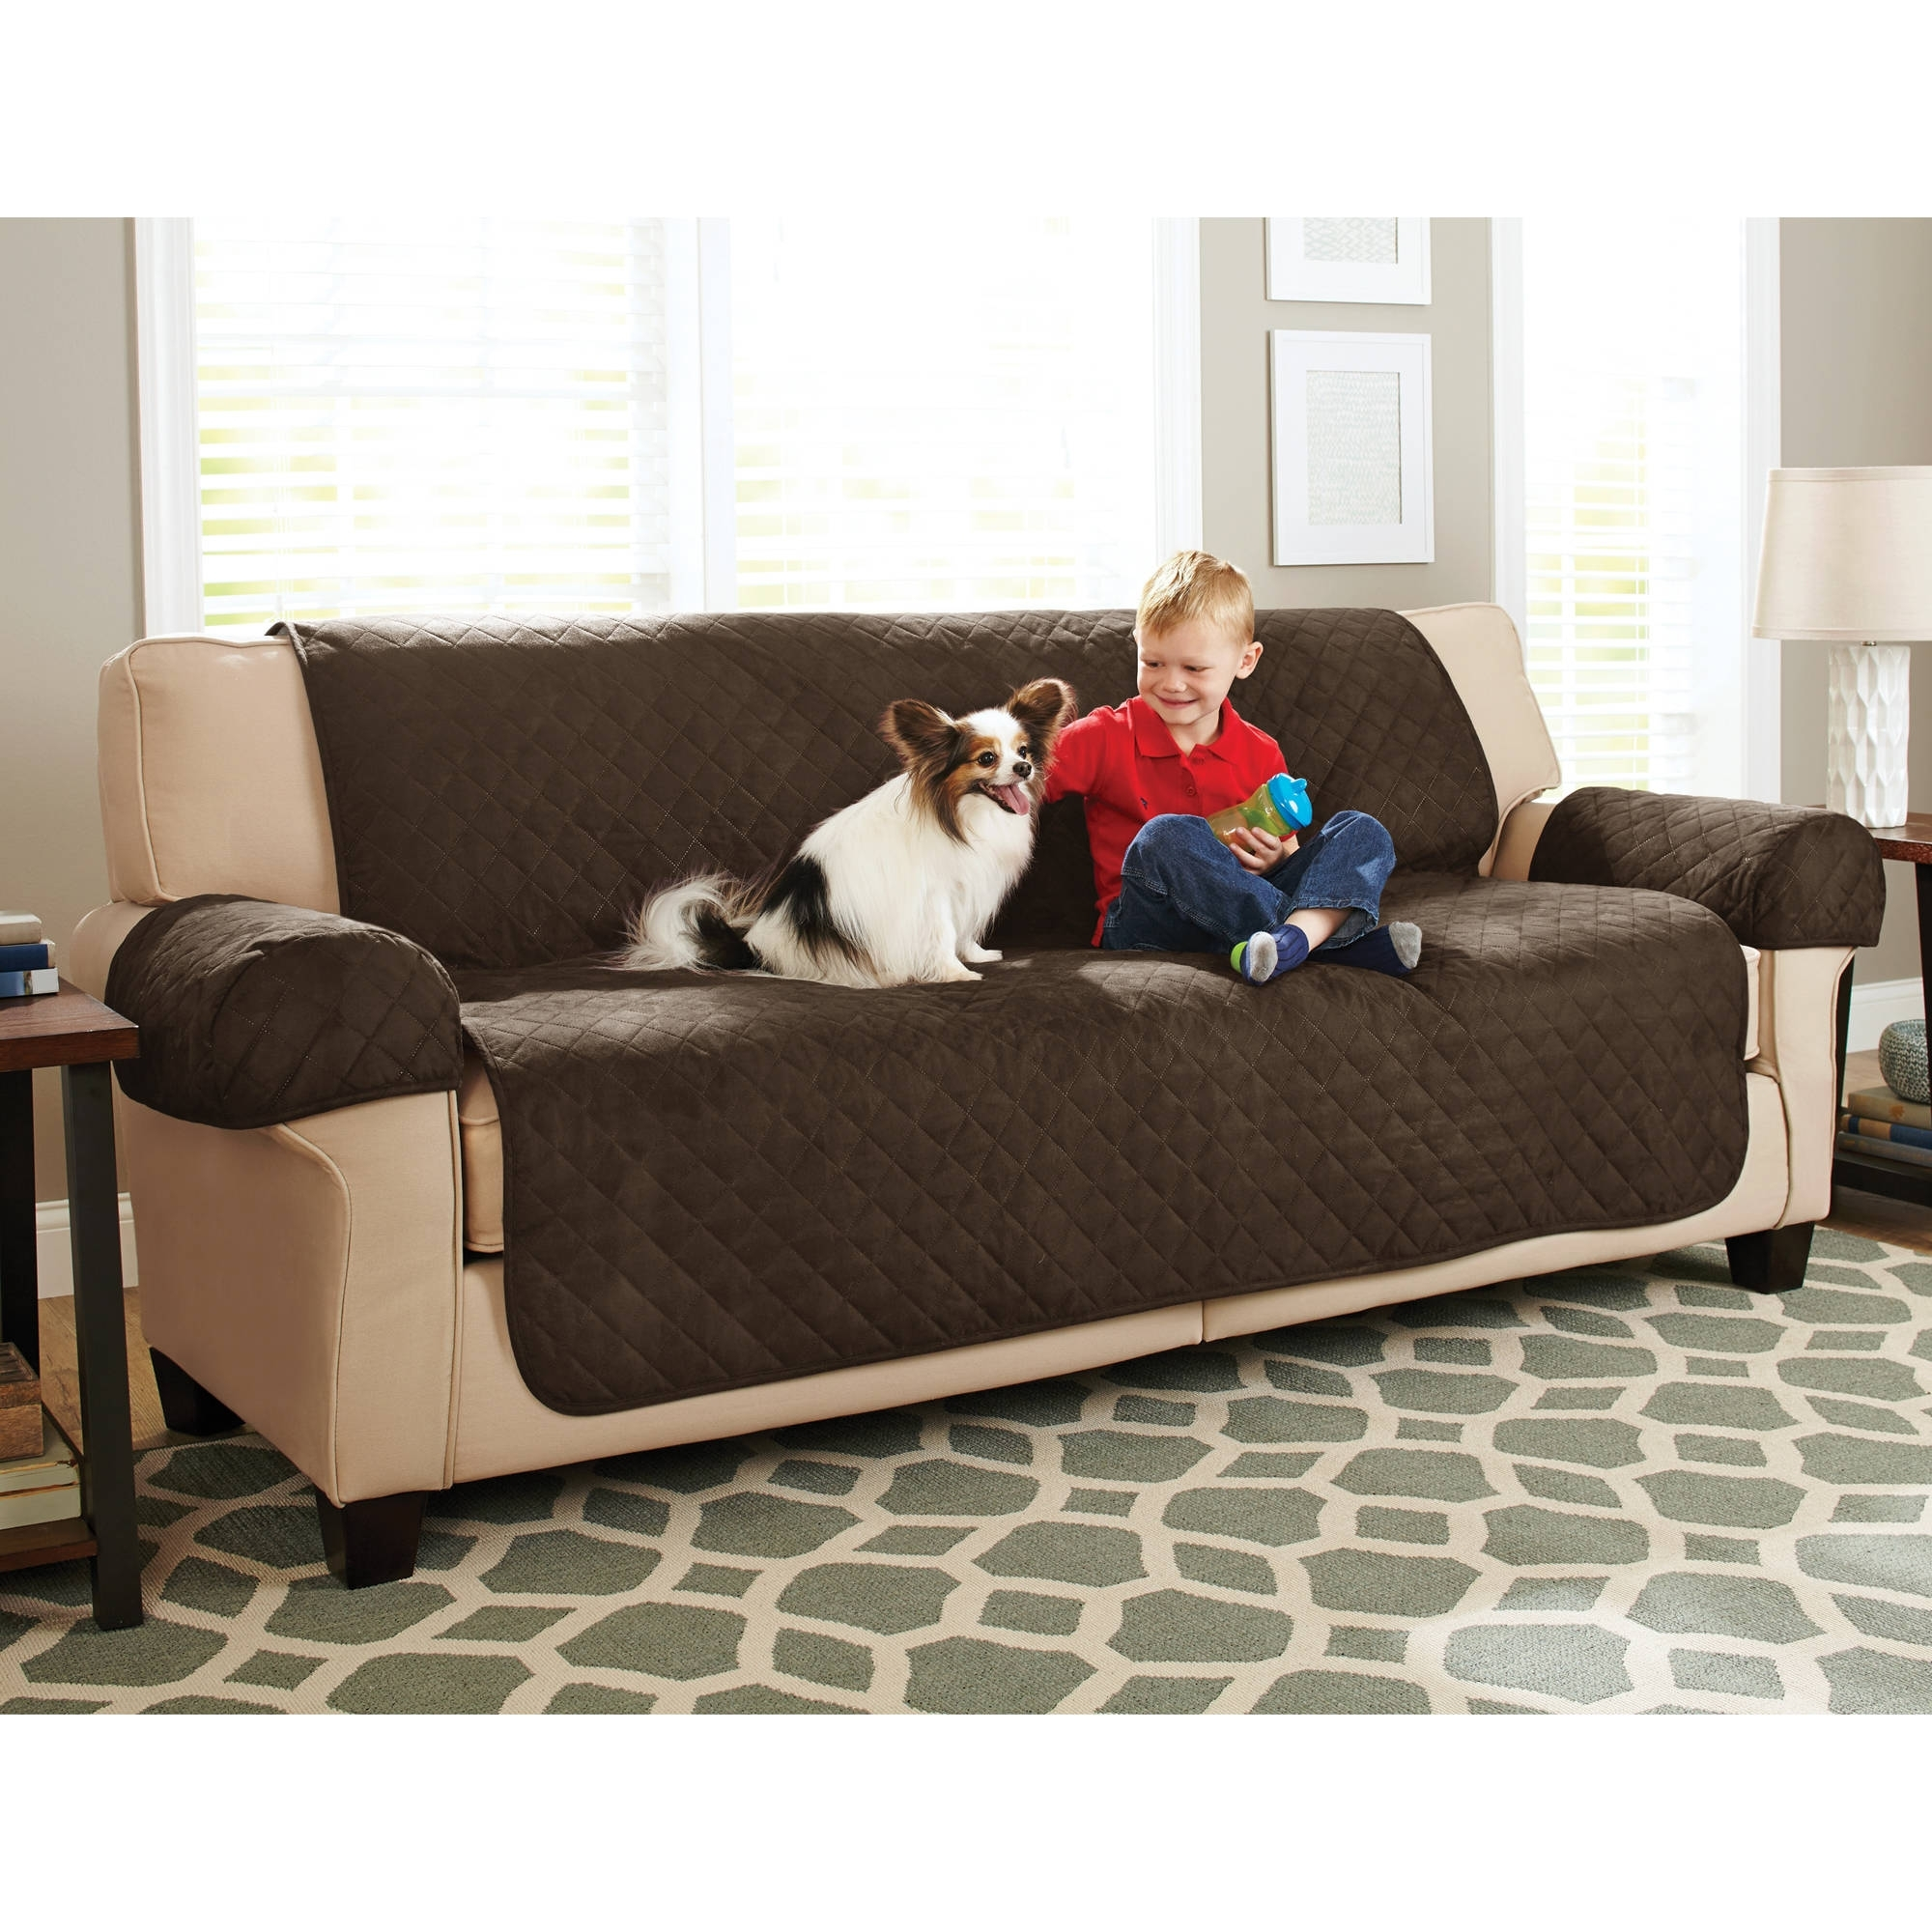 Newest Better Homes And Gardens Waterproof Non Slip Faux Suede Pet In Faux Suede Sofas (View 16 of 20)